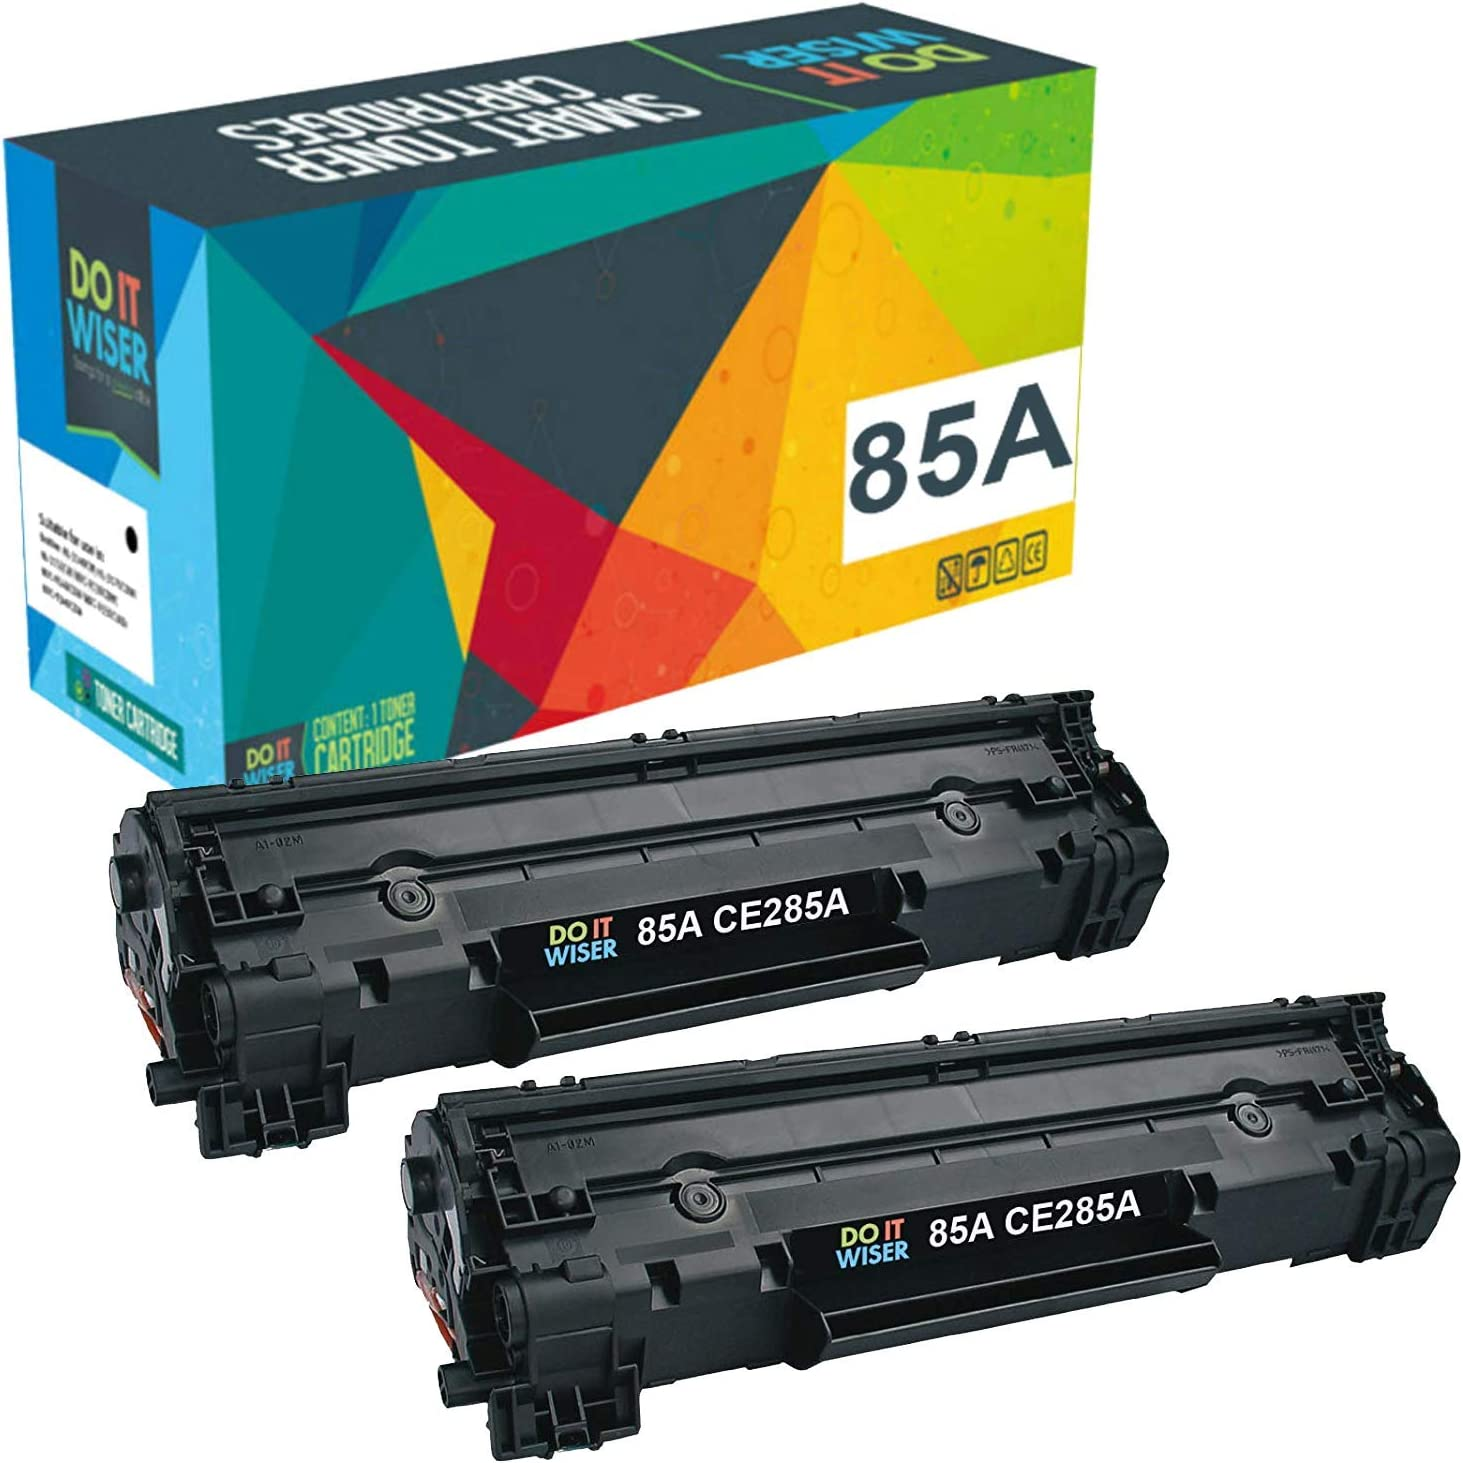 Do it Wiser Compatible Toner Cartridges Replacement for HP 85A CE285A, Compatible with HP Laserjet Pro P1102W P1109W M1212NF M1217NFW Printer, 2 Black